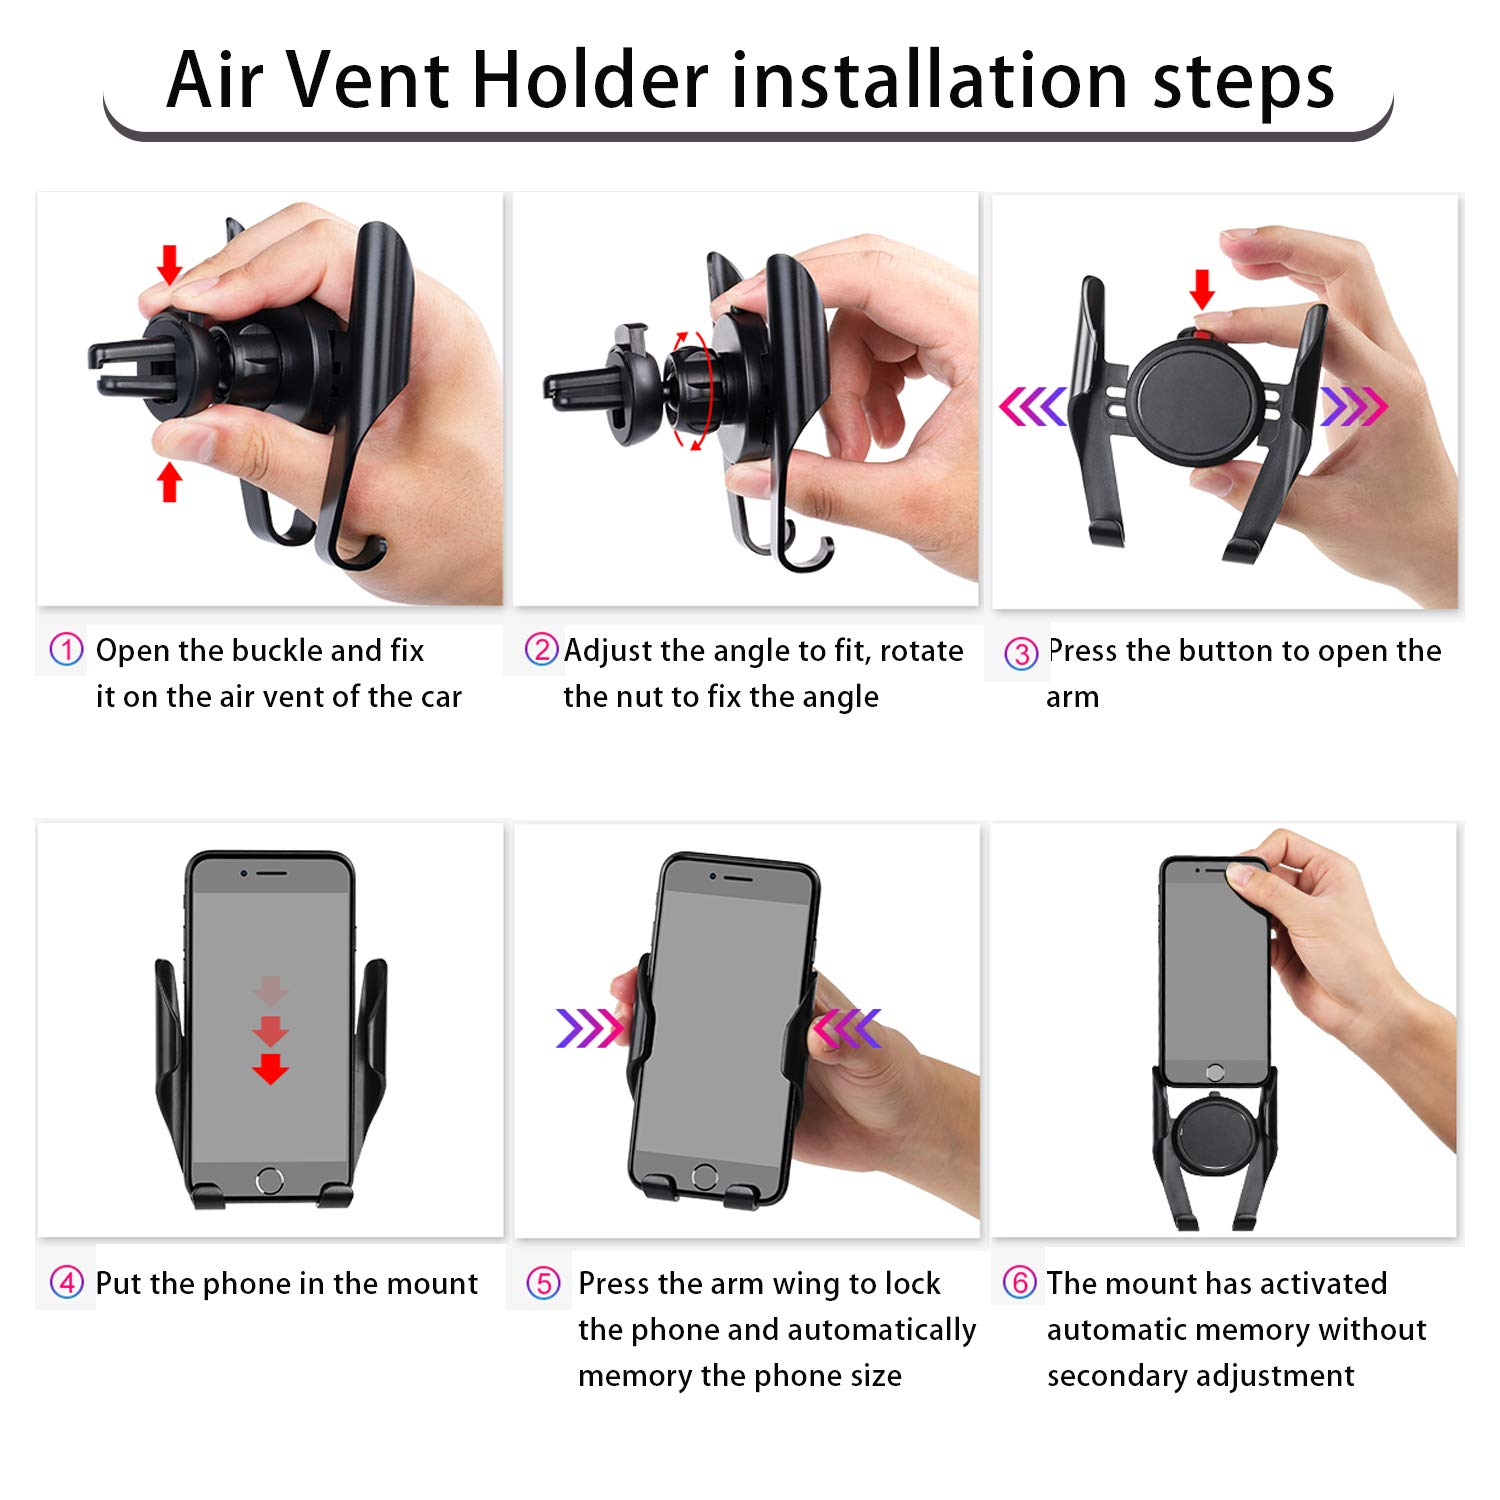 Cell Phone Car Mount Compatible iPhone XR Xs Max Xs X 8 7 6 Plus Fit for Galaxy S9 8 7 LG Google 4351496738 Car Phone Mount,Leepiya 2-in-1 Universal Car Air Vent Holder Dashboard Mount Windshield Mount for Car